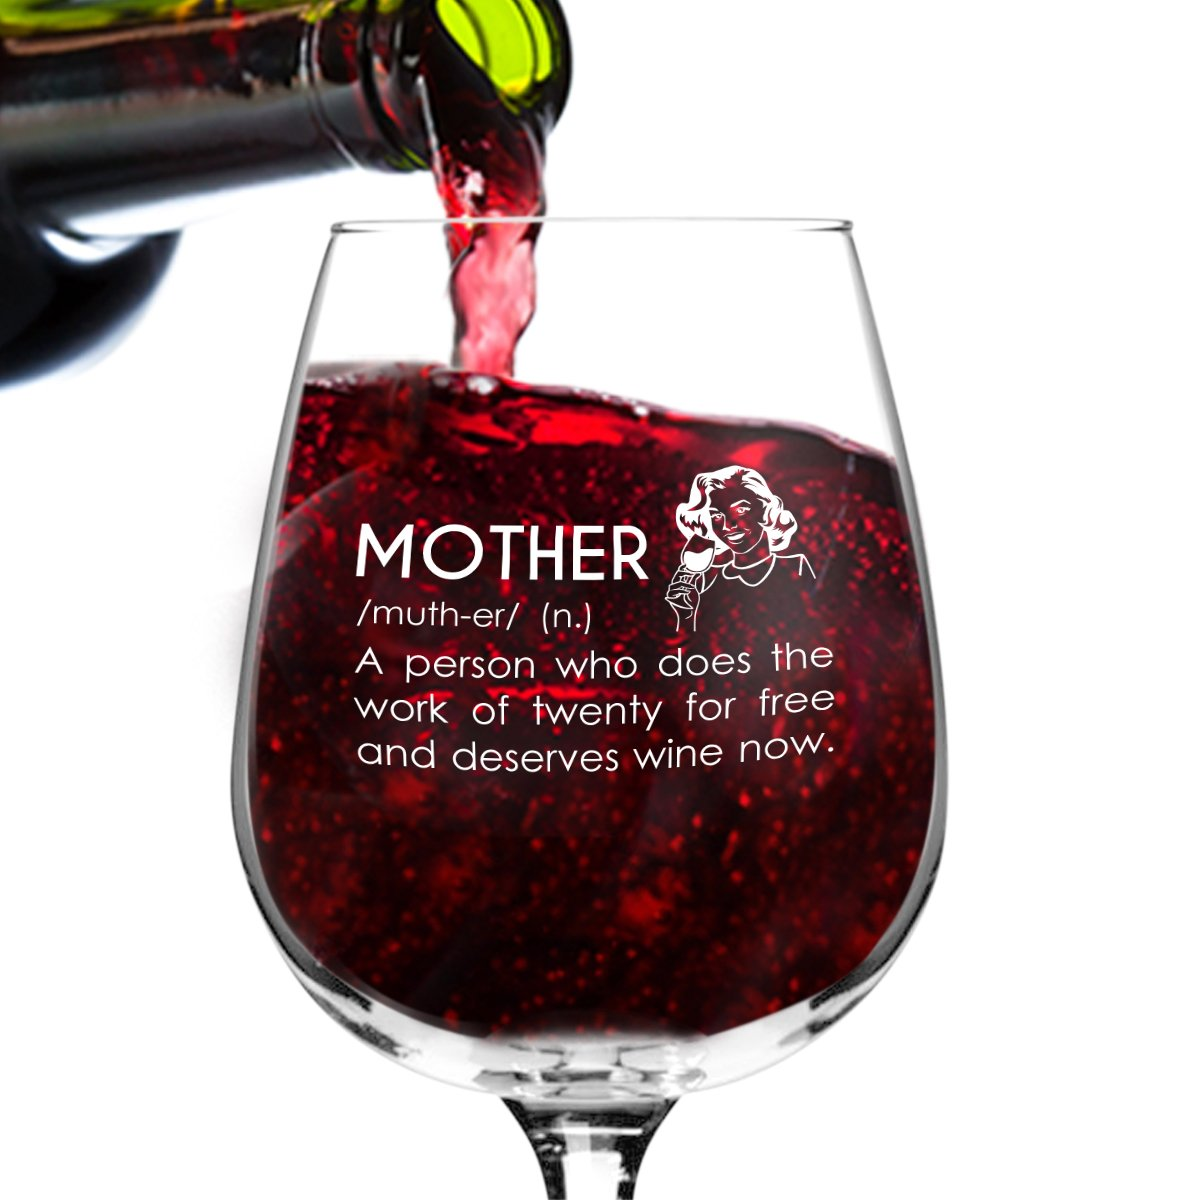 Mother Definition Funny Wine Glass Gifts For Women Premium Birthday Gift Her Mom